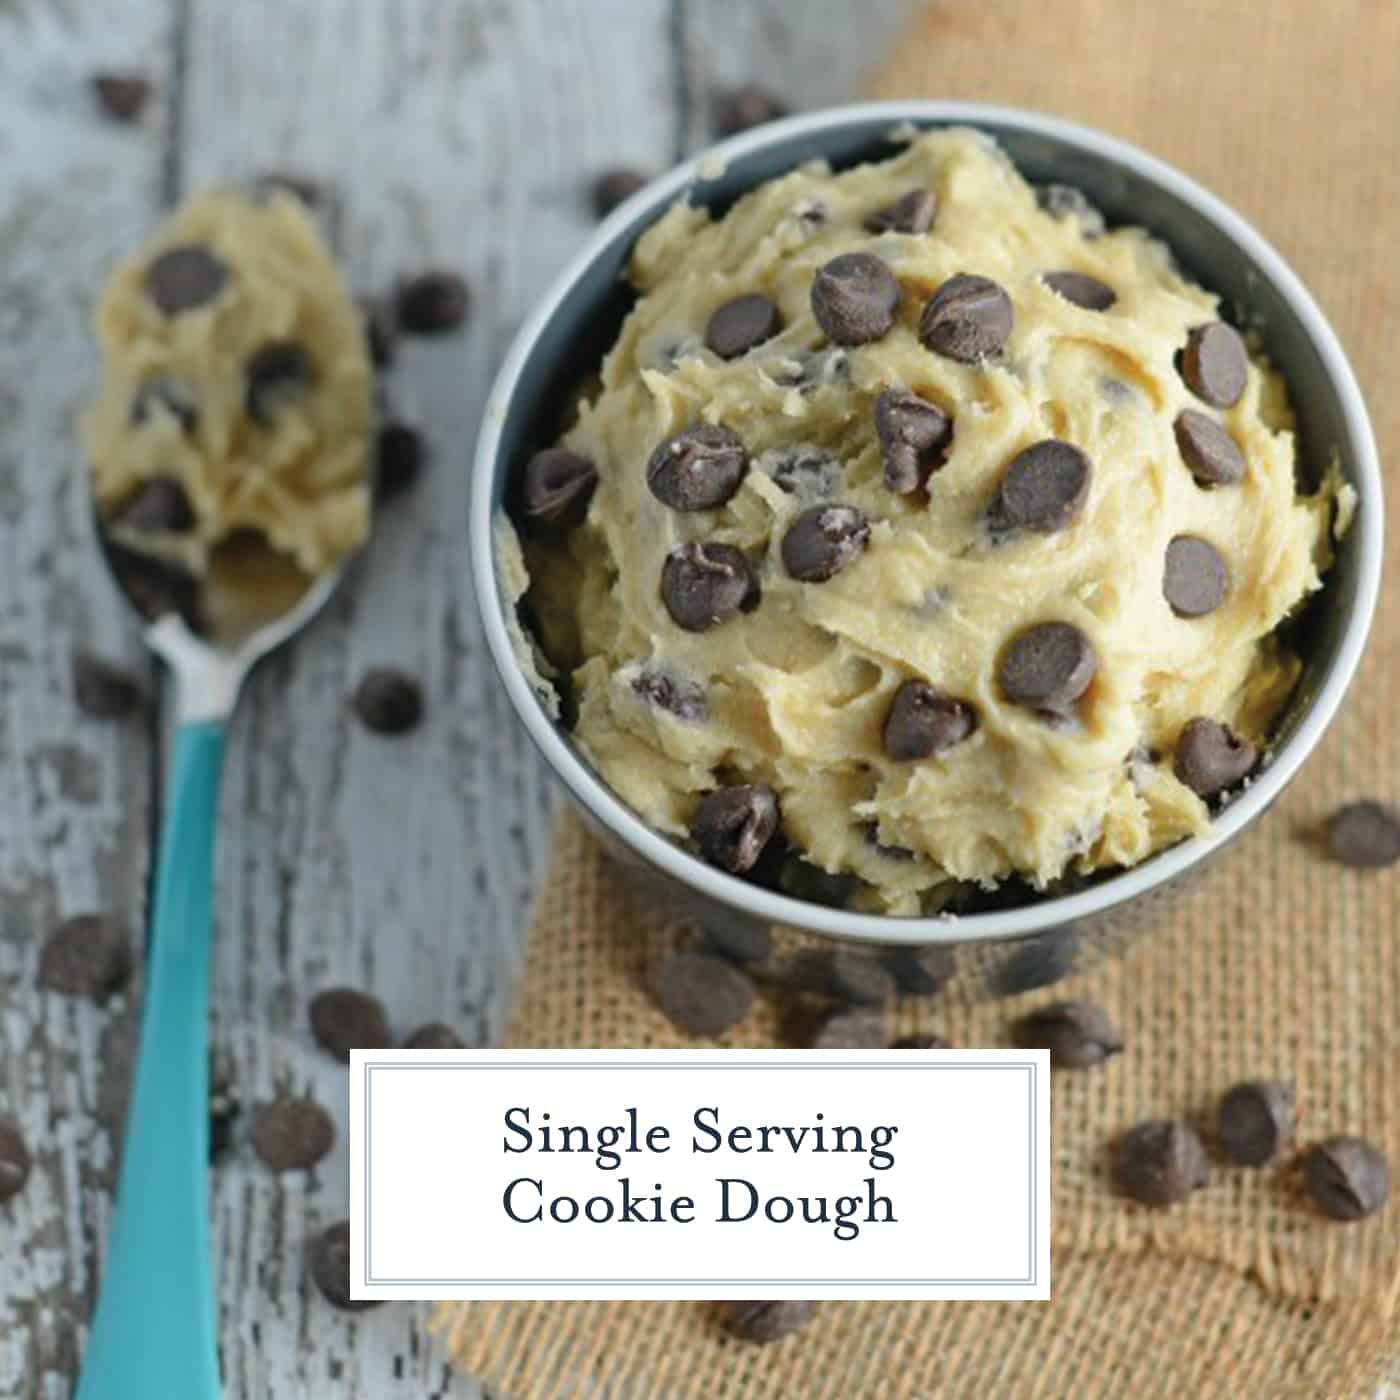 Edible Cookie Dough in a Bowl